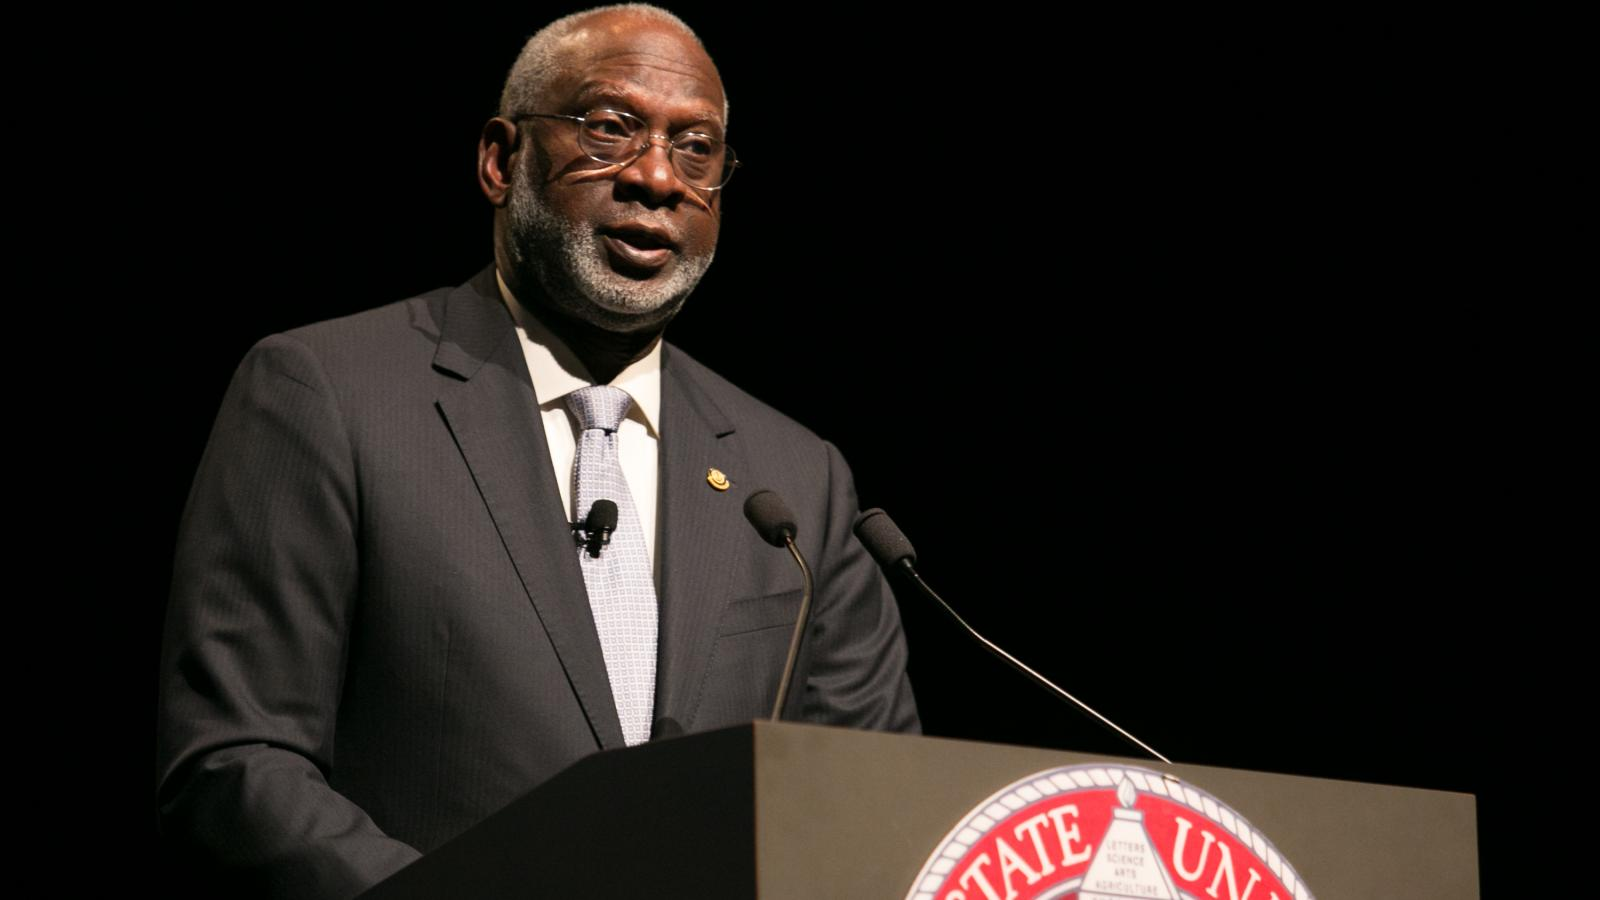 Former Surgeon General Dr. David Satcher speaking on Health Equity